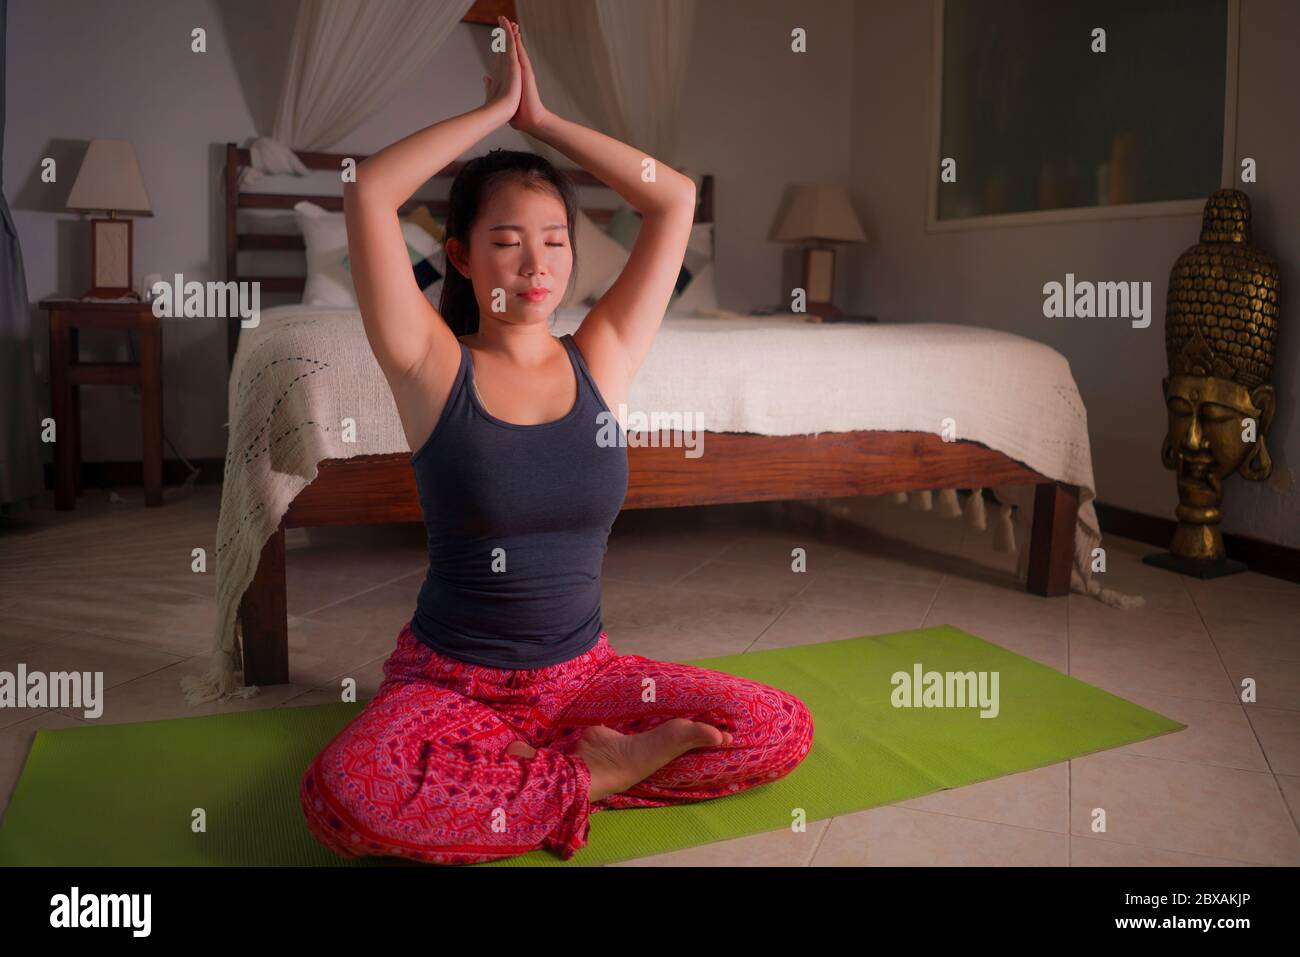 young happy and beautiful Asian Korean woman at home bedroom doing meditation workout on yoga mat relaxed and peaceful in wellness and healthy lifesty Stock Photo